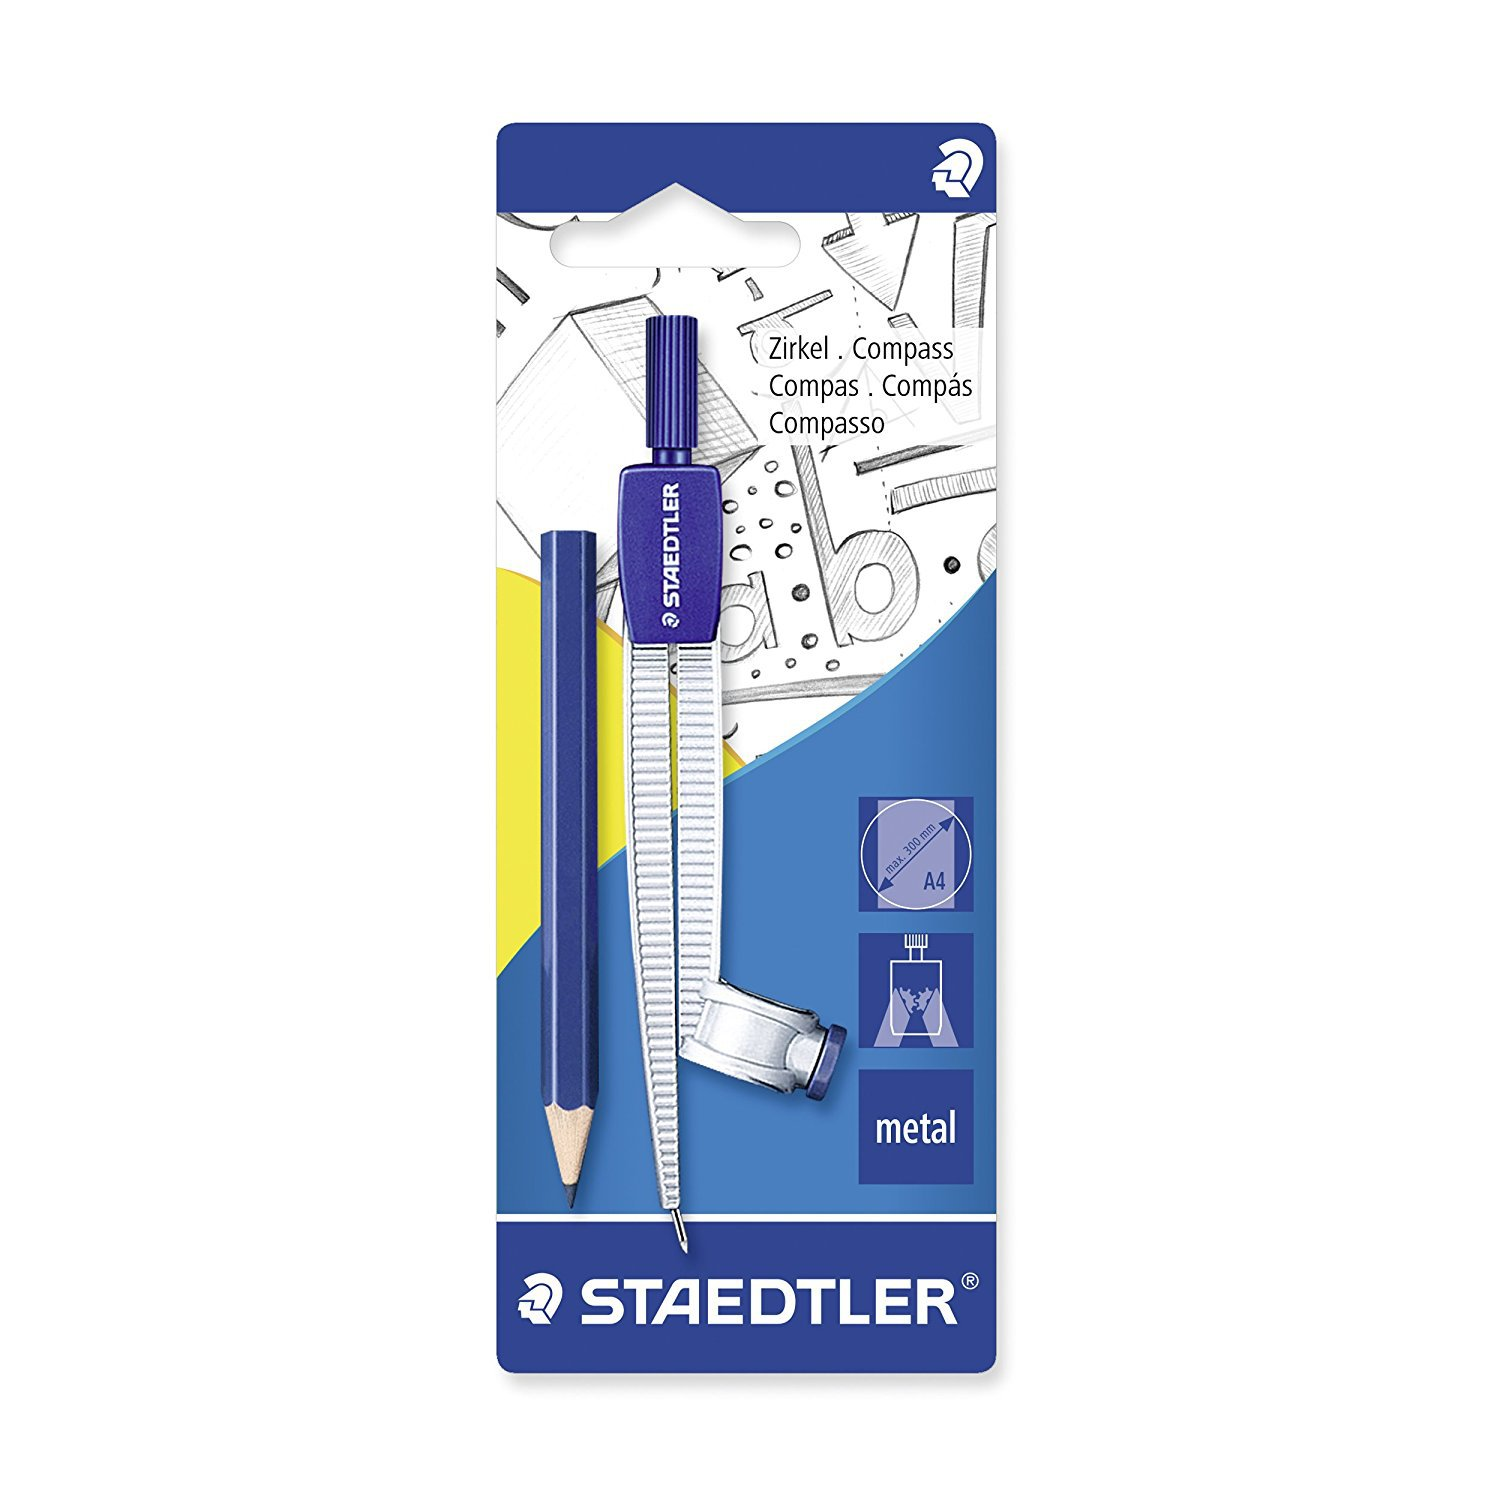 STAEDTLER Staedtler 550 55BK For Student Mapping Compasses Attached Ruler (Hanging Card)